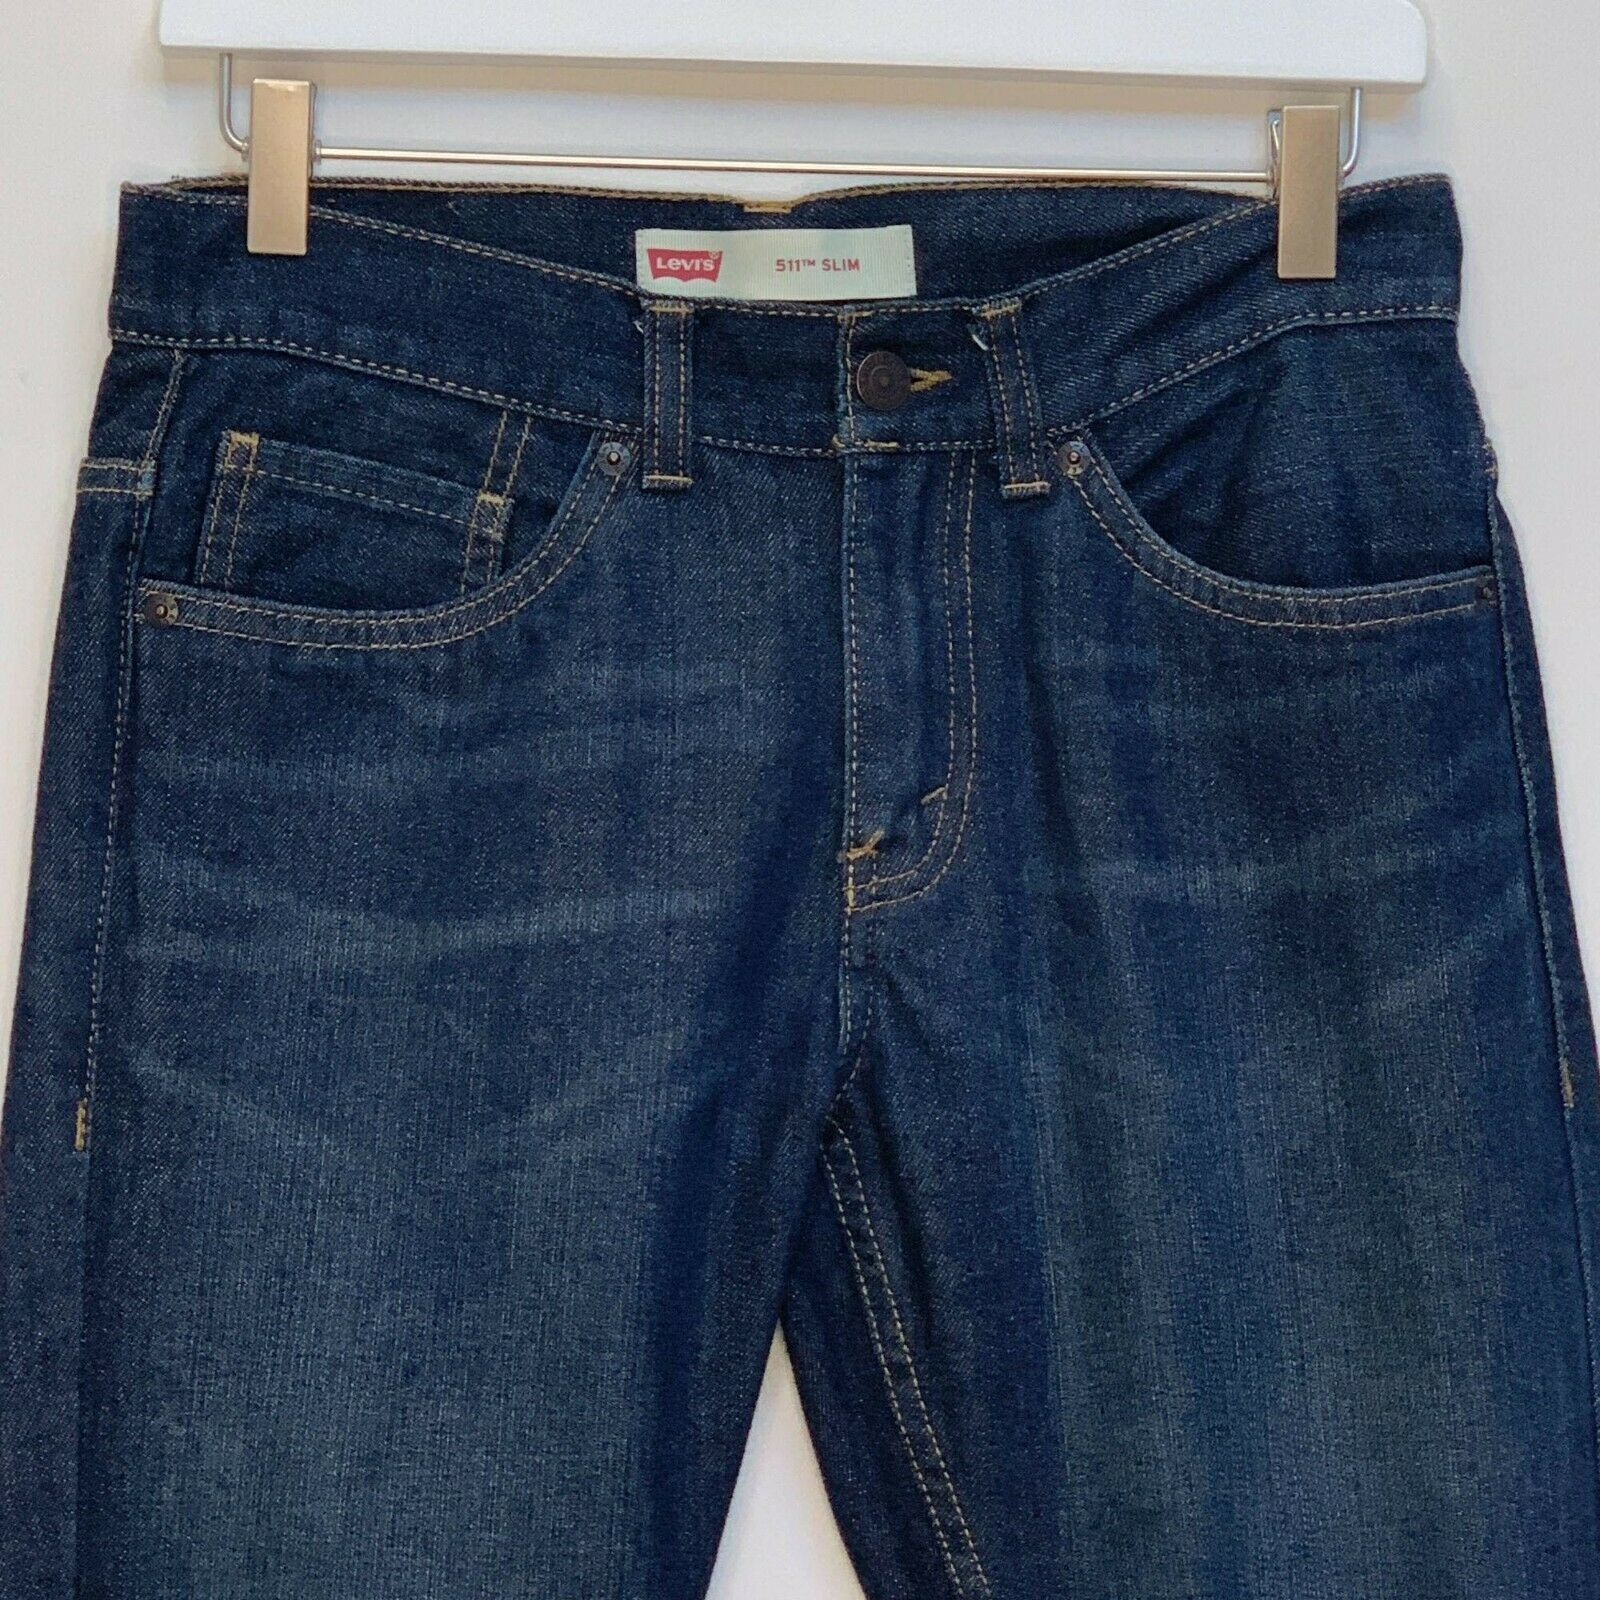 Primary image for Levi's 511 Girls Slim Fit Blue Jeans Size 16